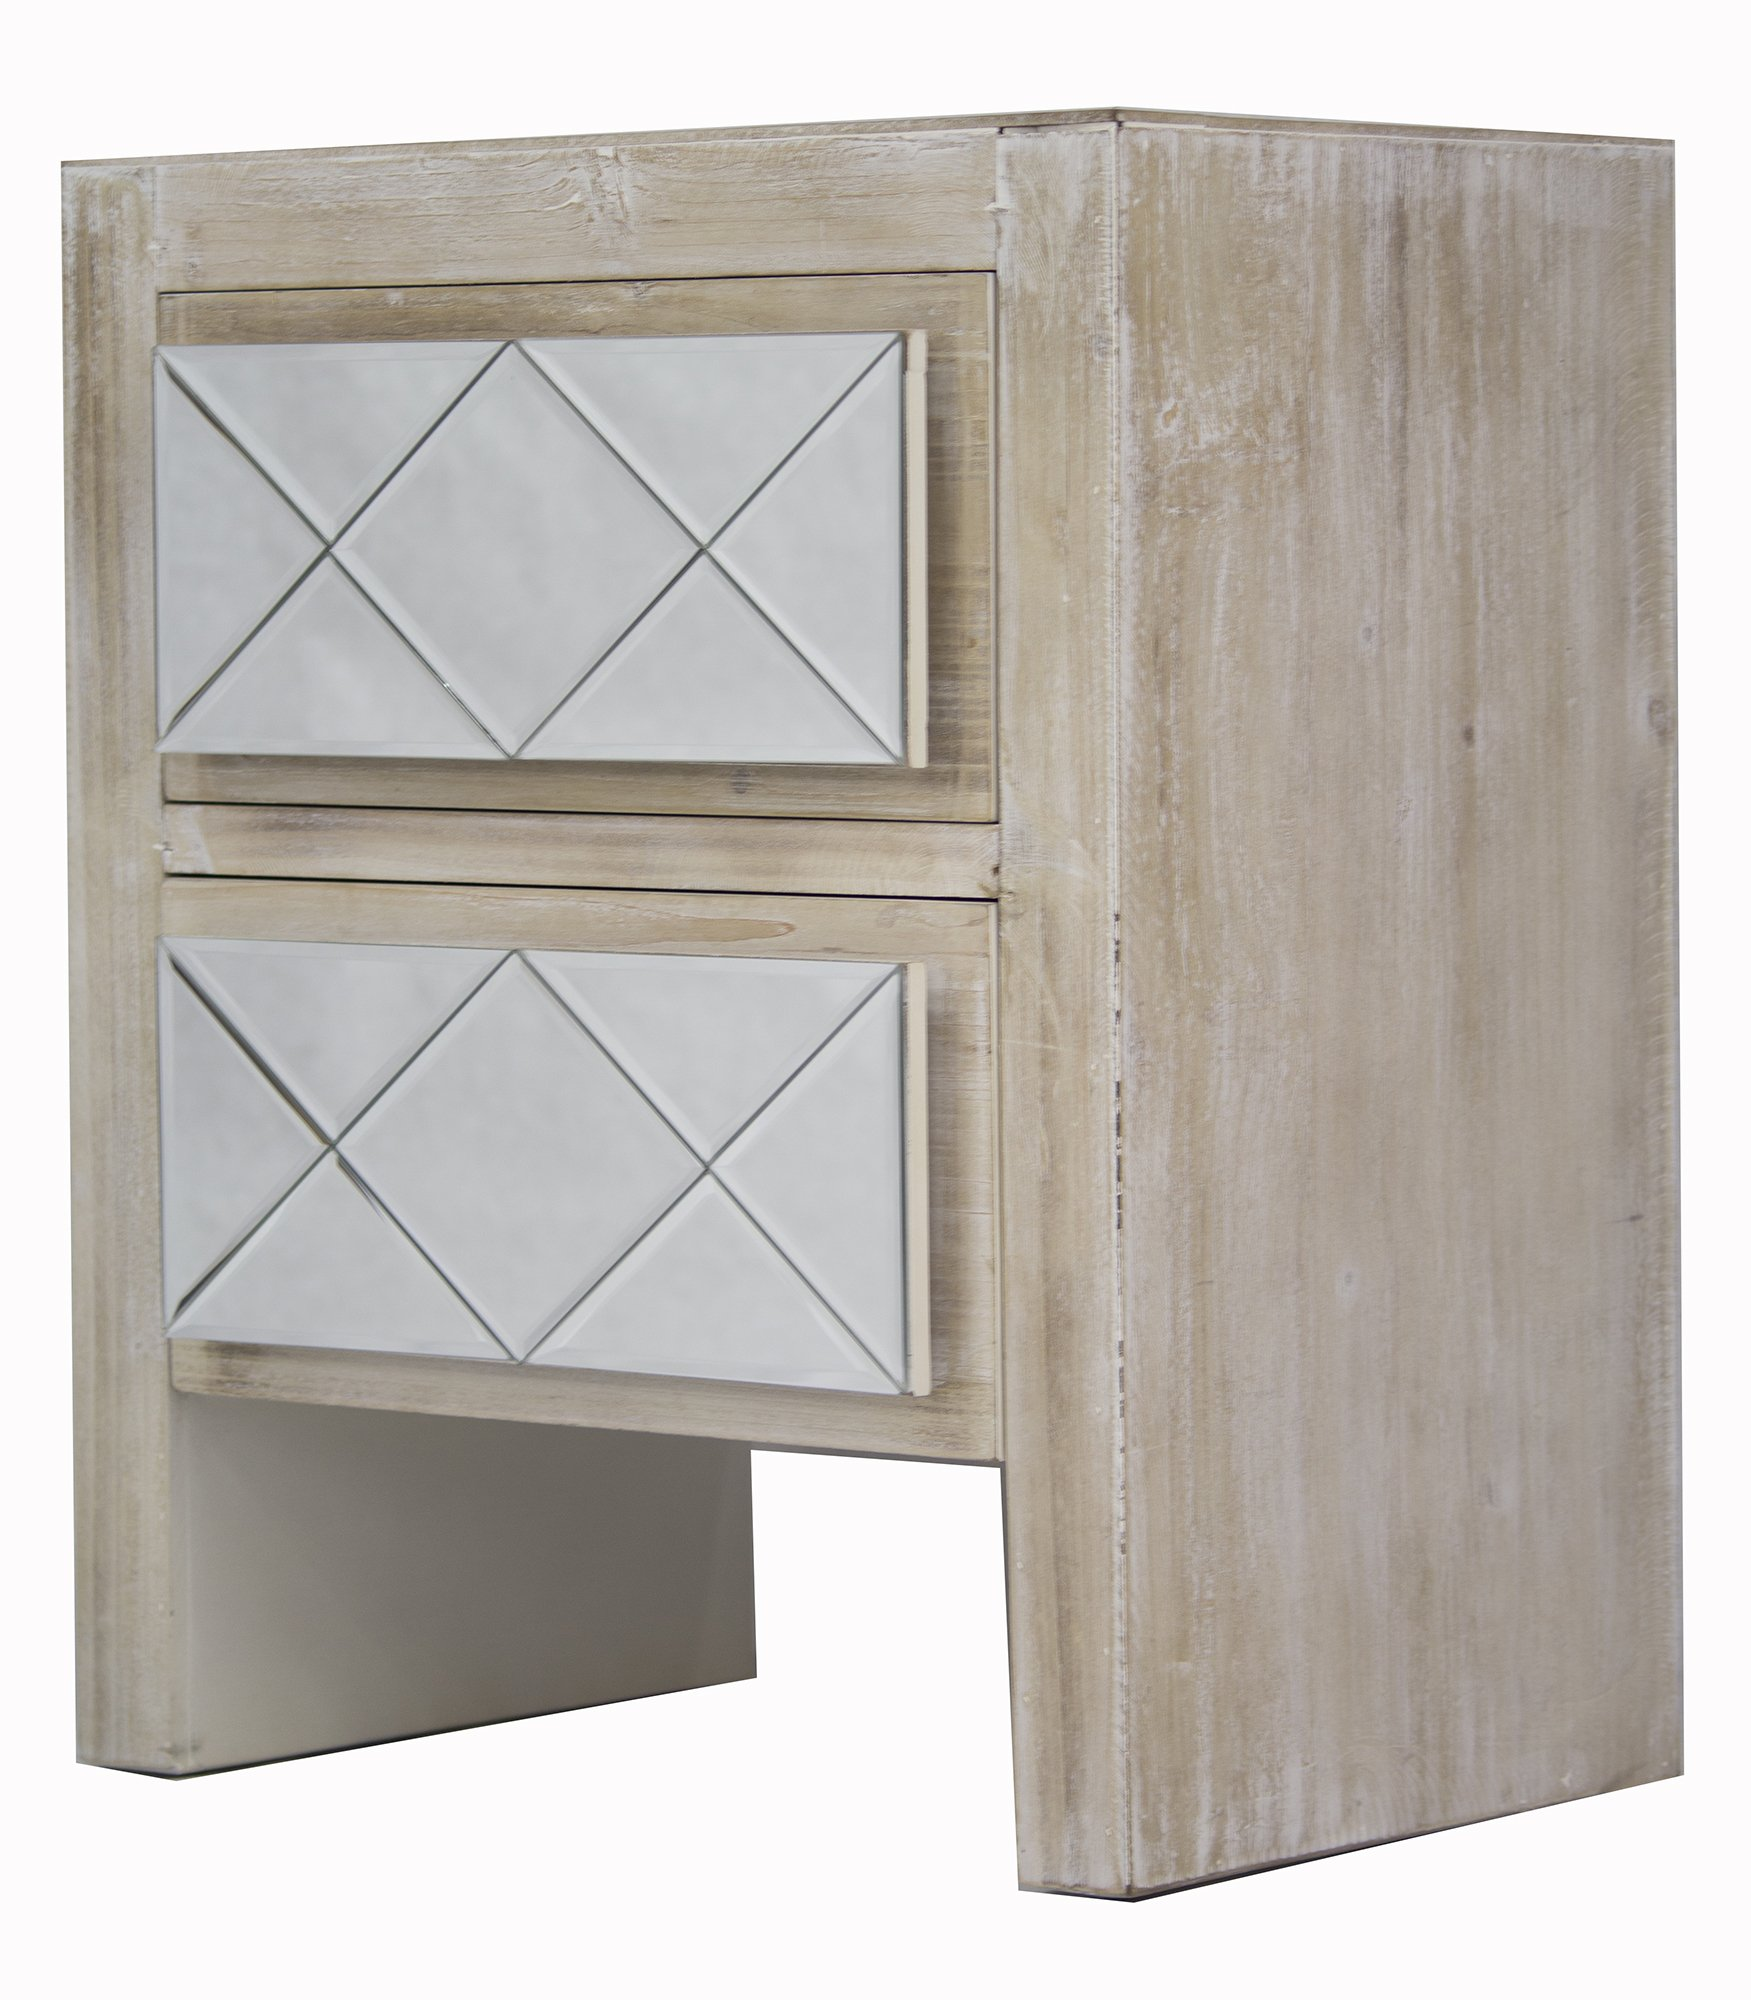 Heather Ann Creations Kayla Collection Modern Accent Cabinet With Two Drawers and Decorative Mirrored Finish Design, Distressed Silver